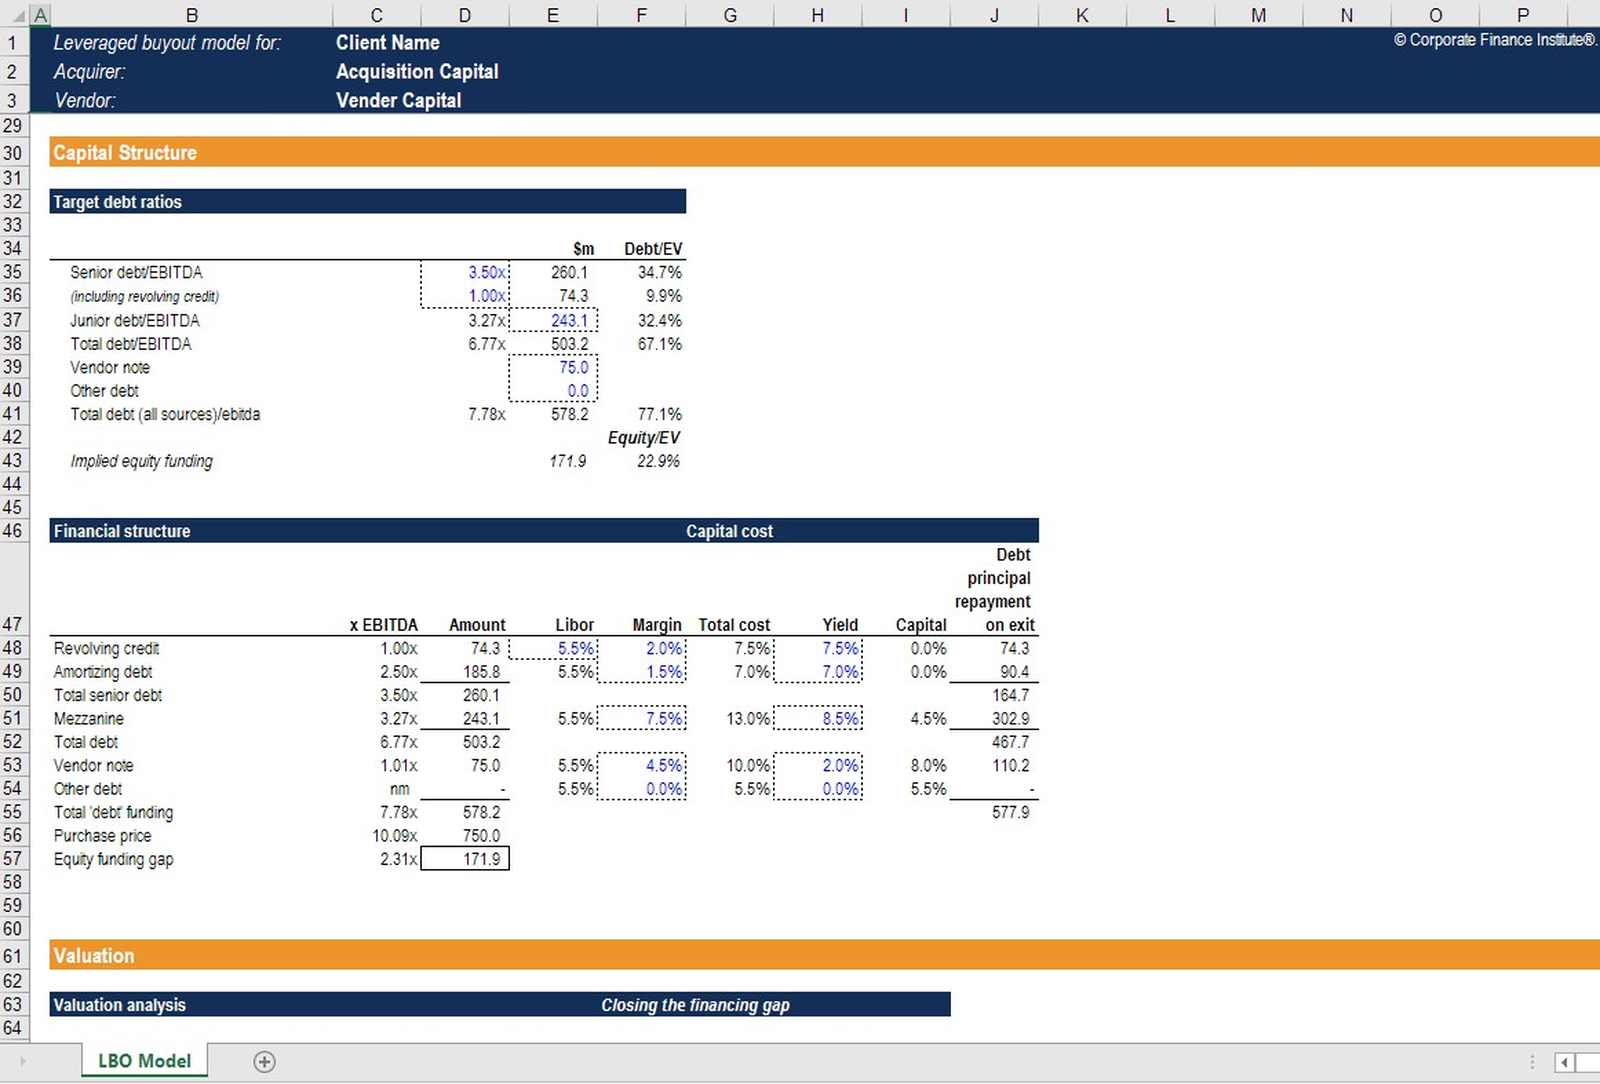 leveraged buyout (LBO) financial model example